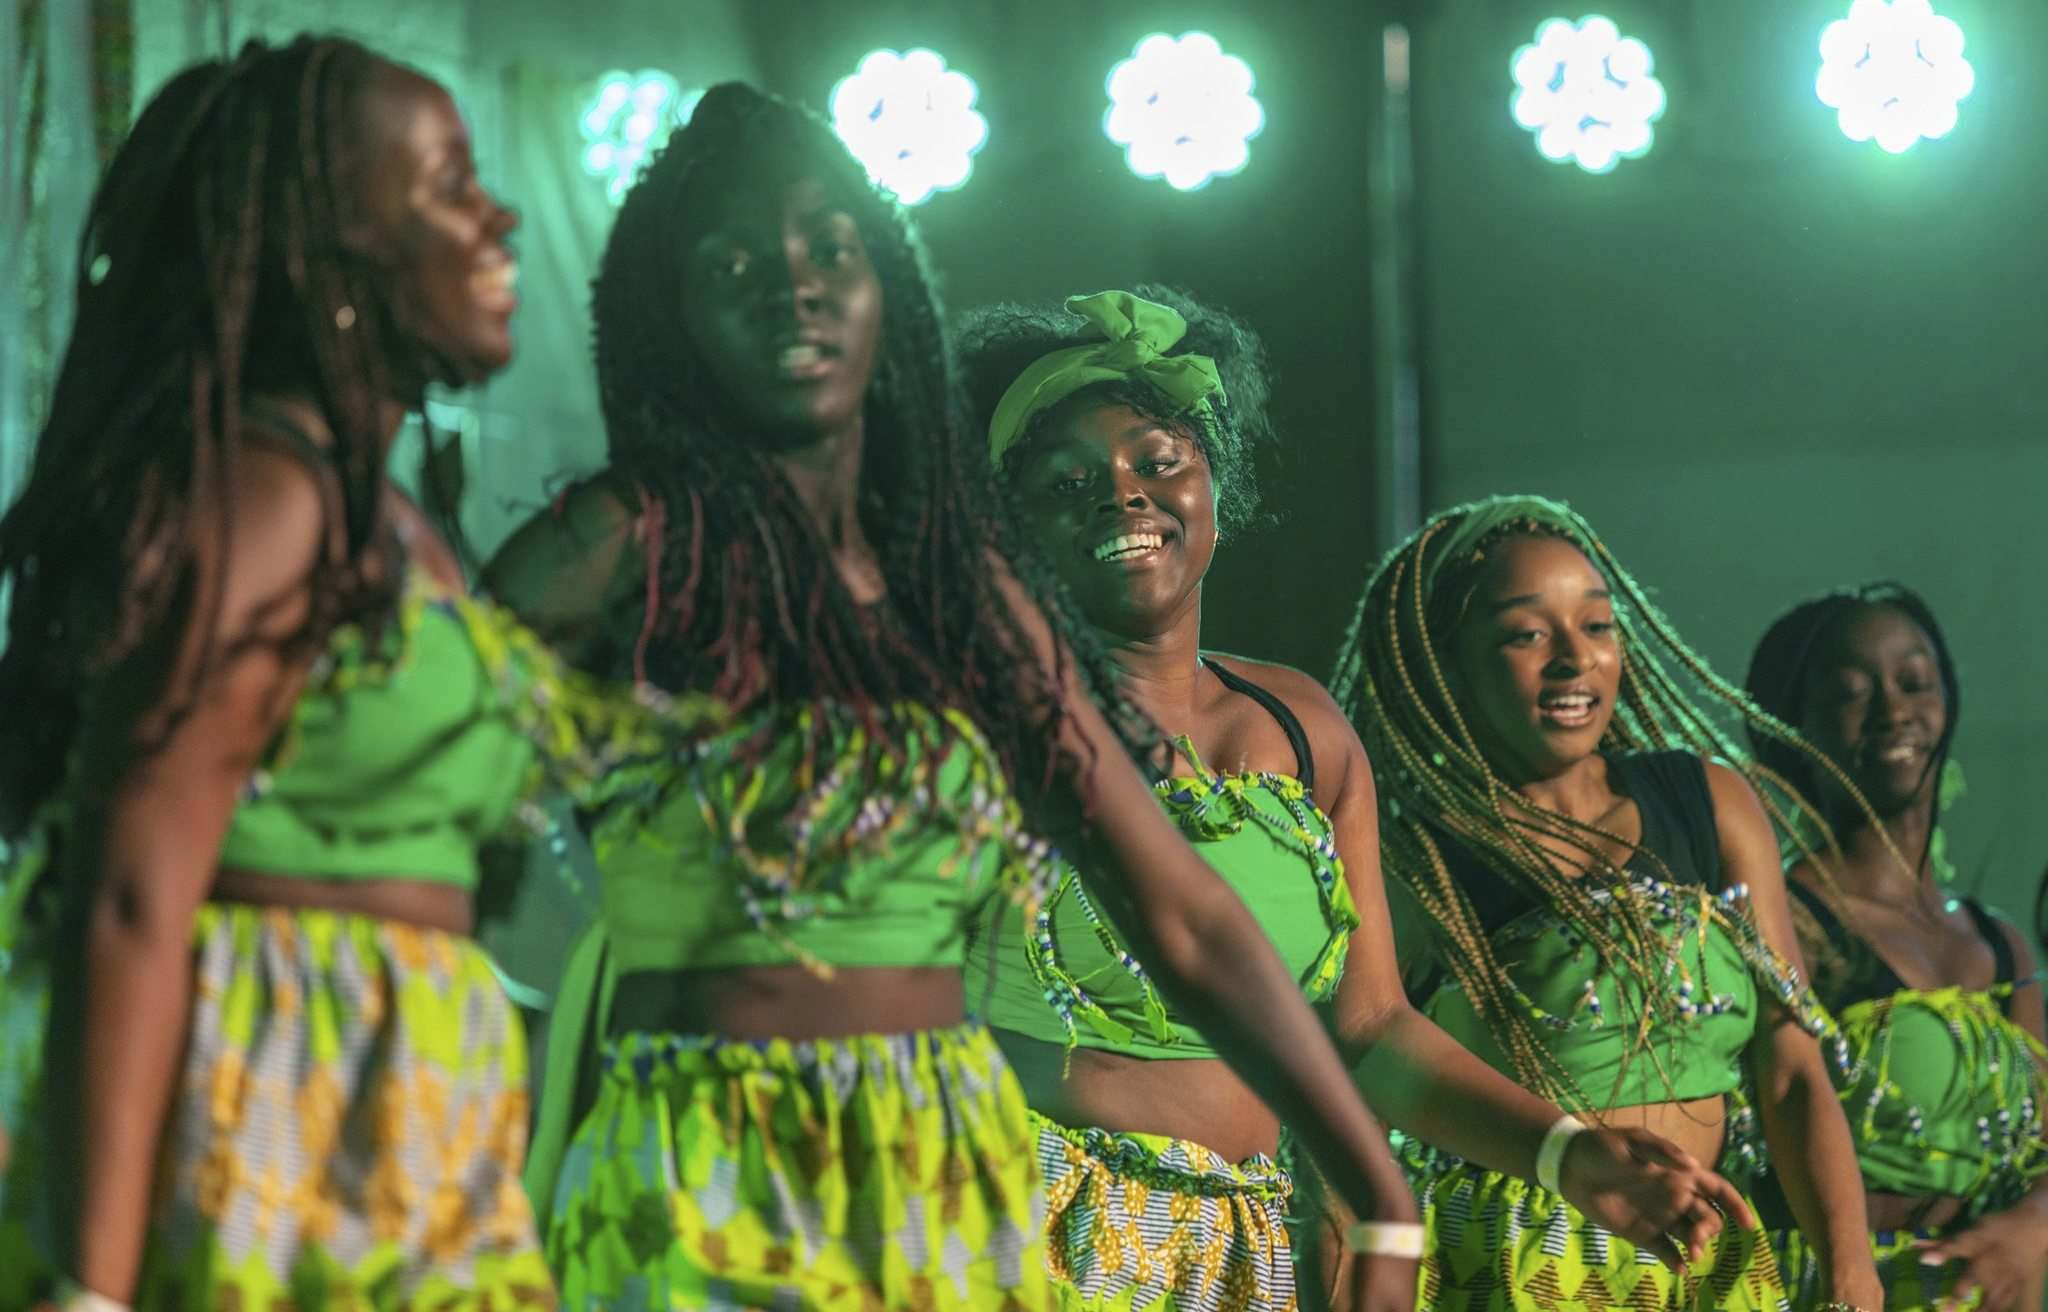 SASHA SEFTER / WINNIPEG FREE PRESS files</p><p>Performers take the stage at Folklorama's Africa pavilion at the Holy Cross Gym in St. Boniface on Aug. 4.</p>